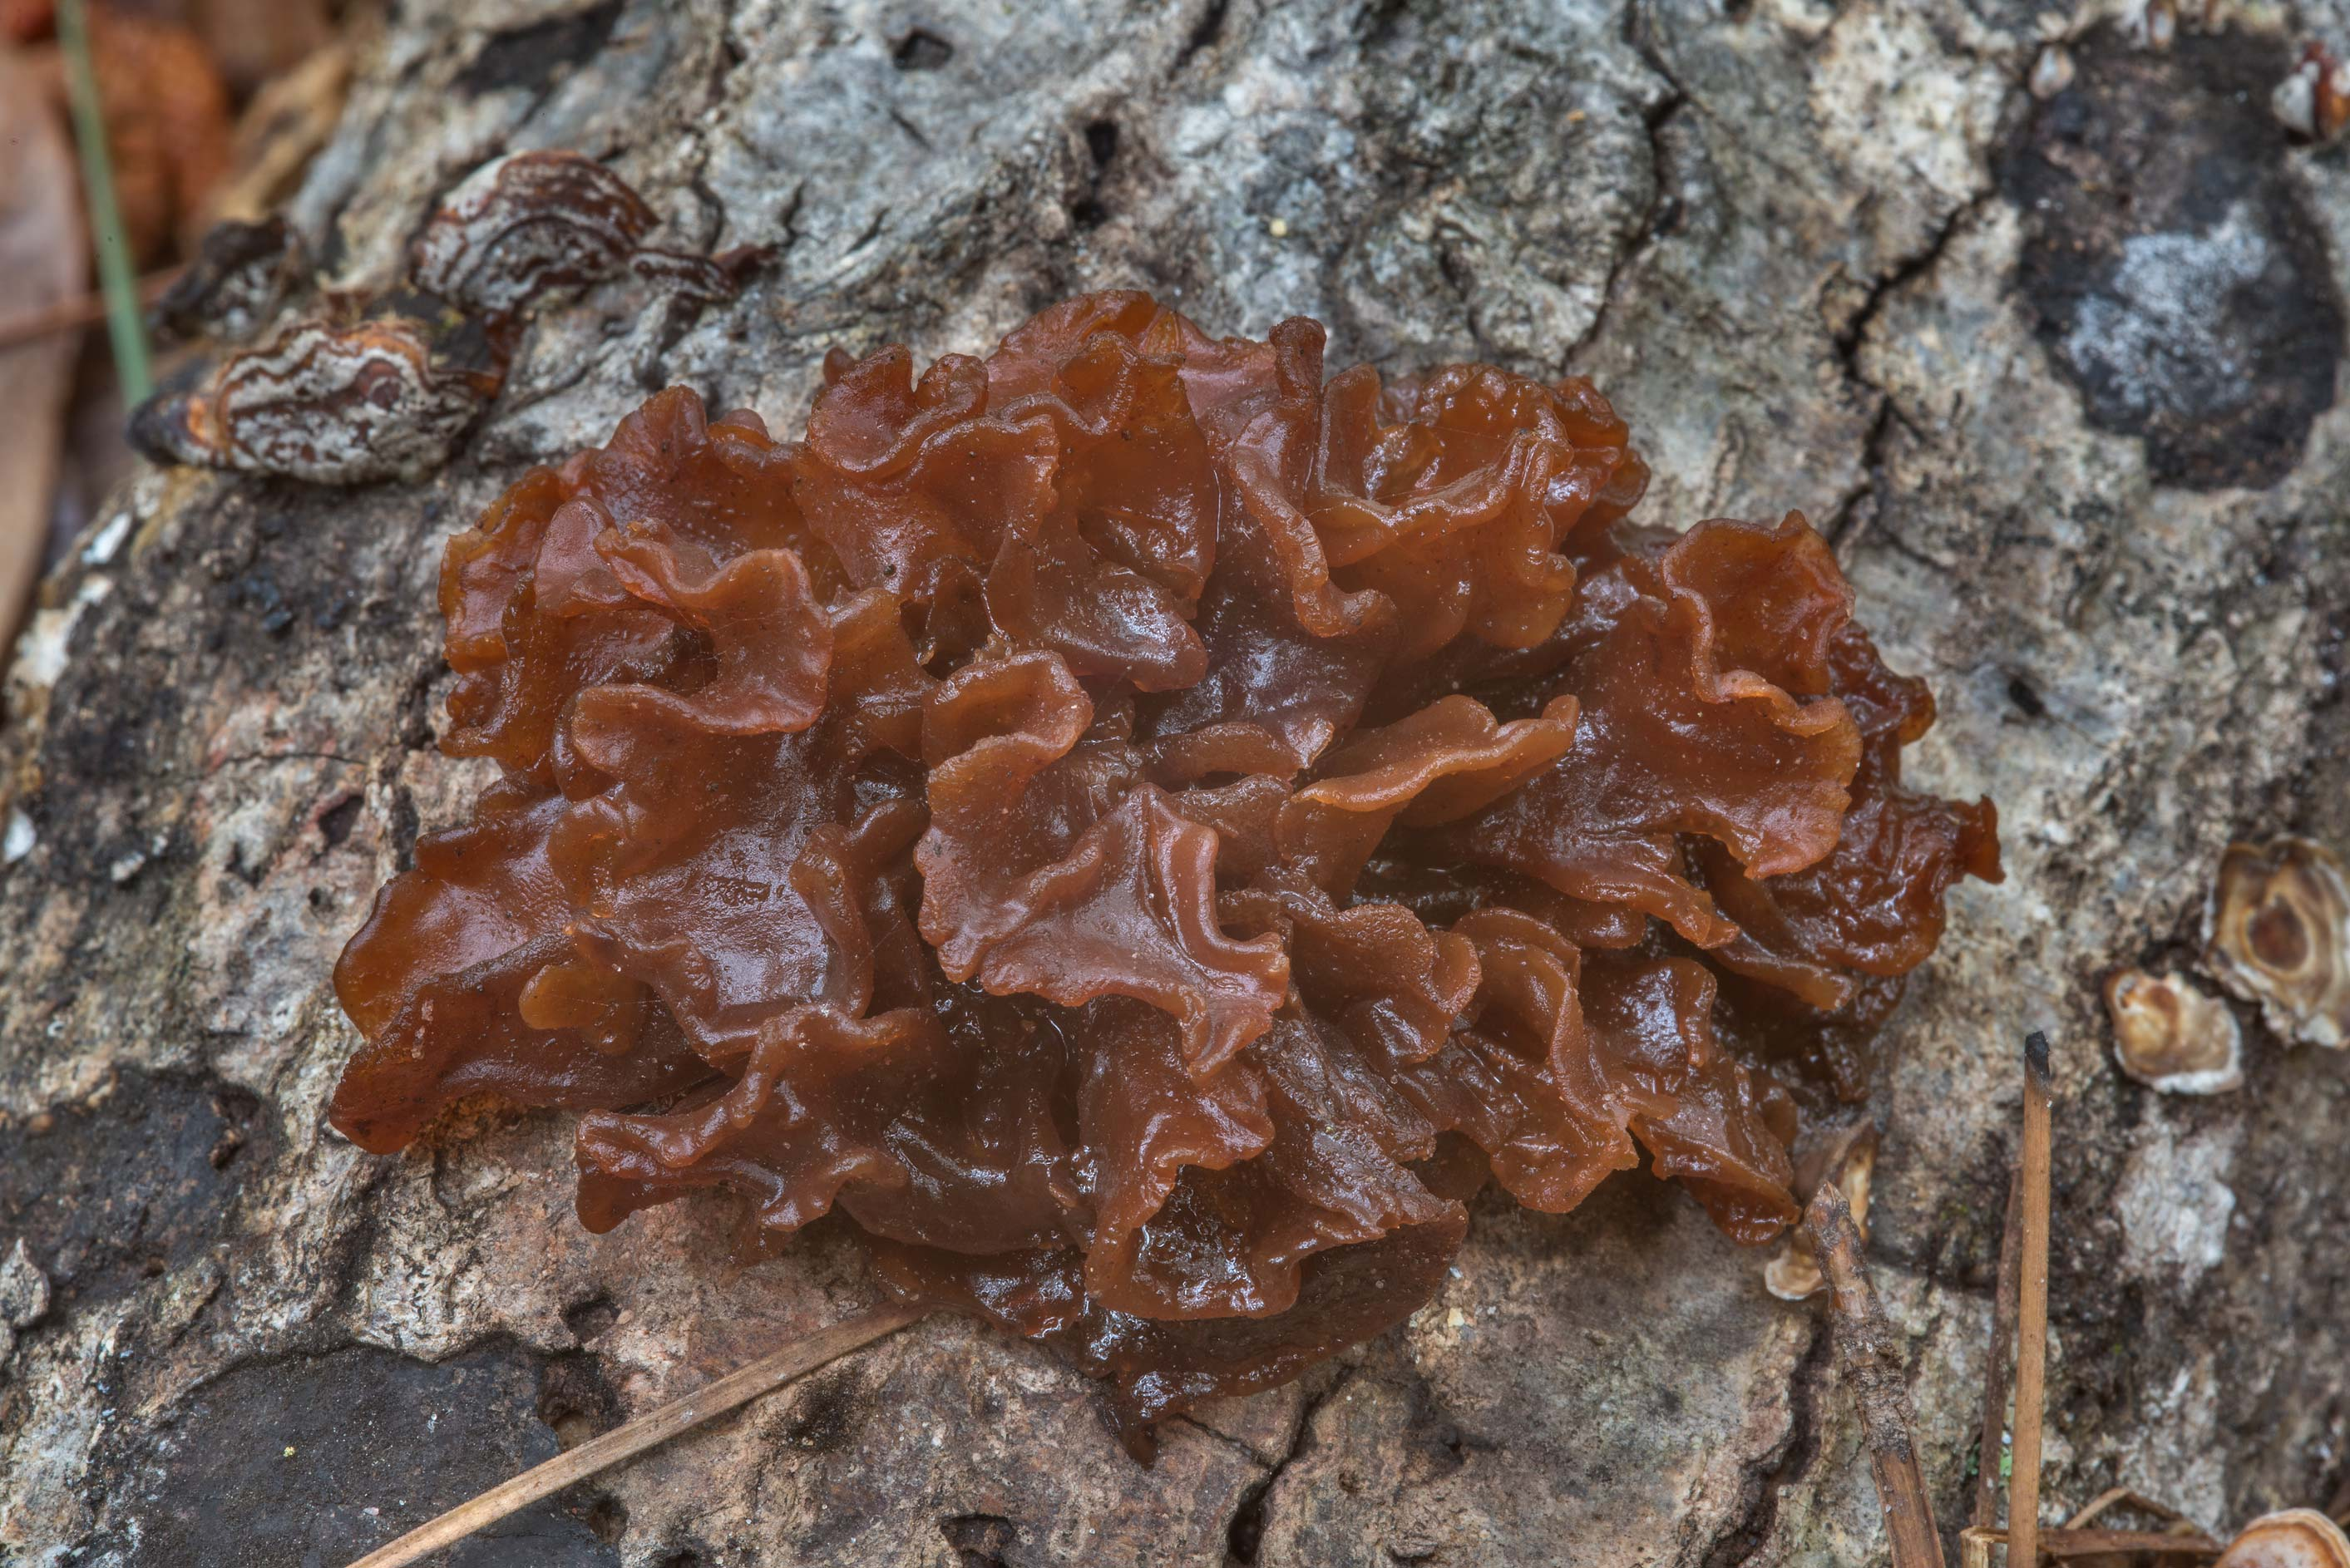 Leafy brain mushrooms (Phaeotremella frondosa...National Forest near Huntsville, Texas